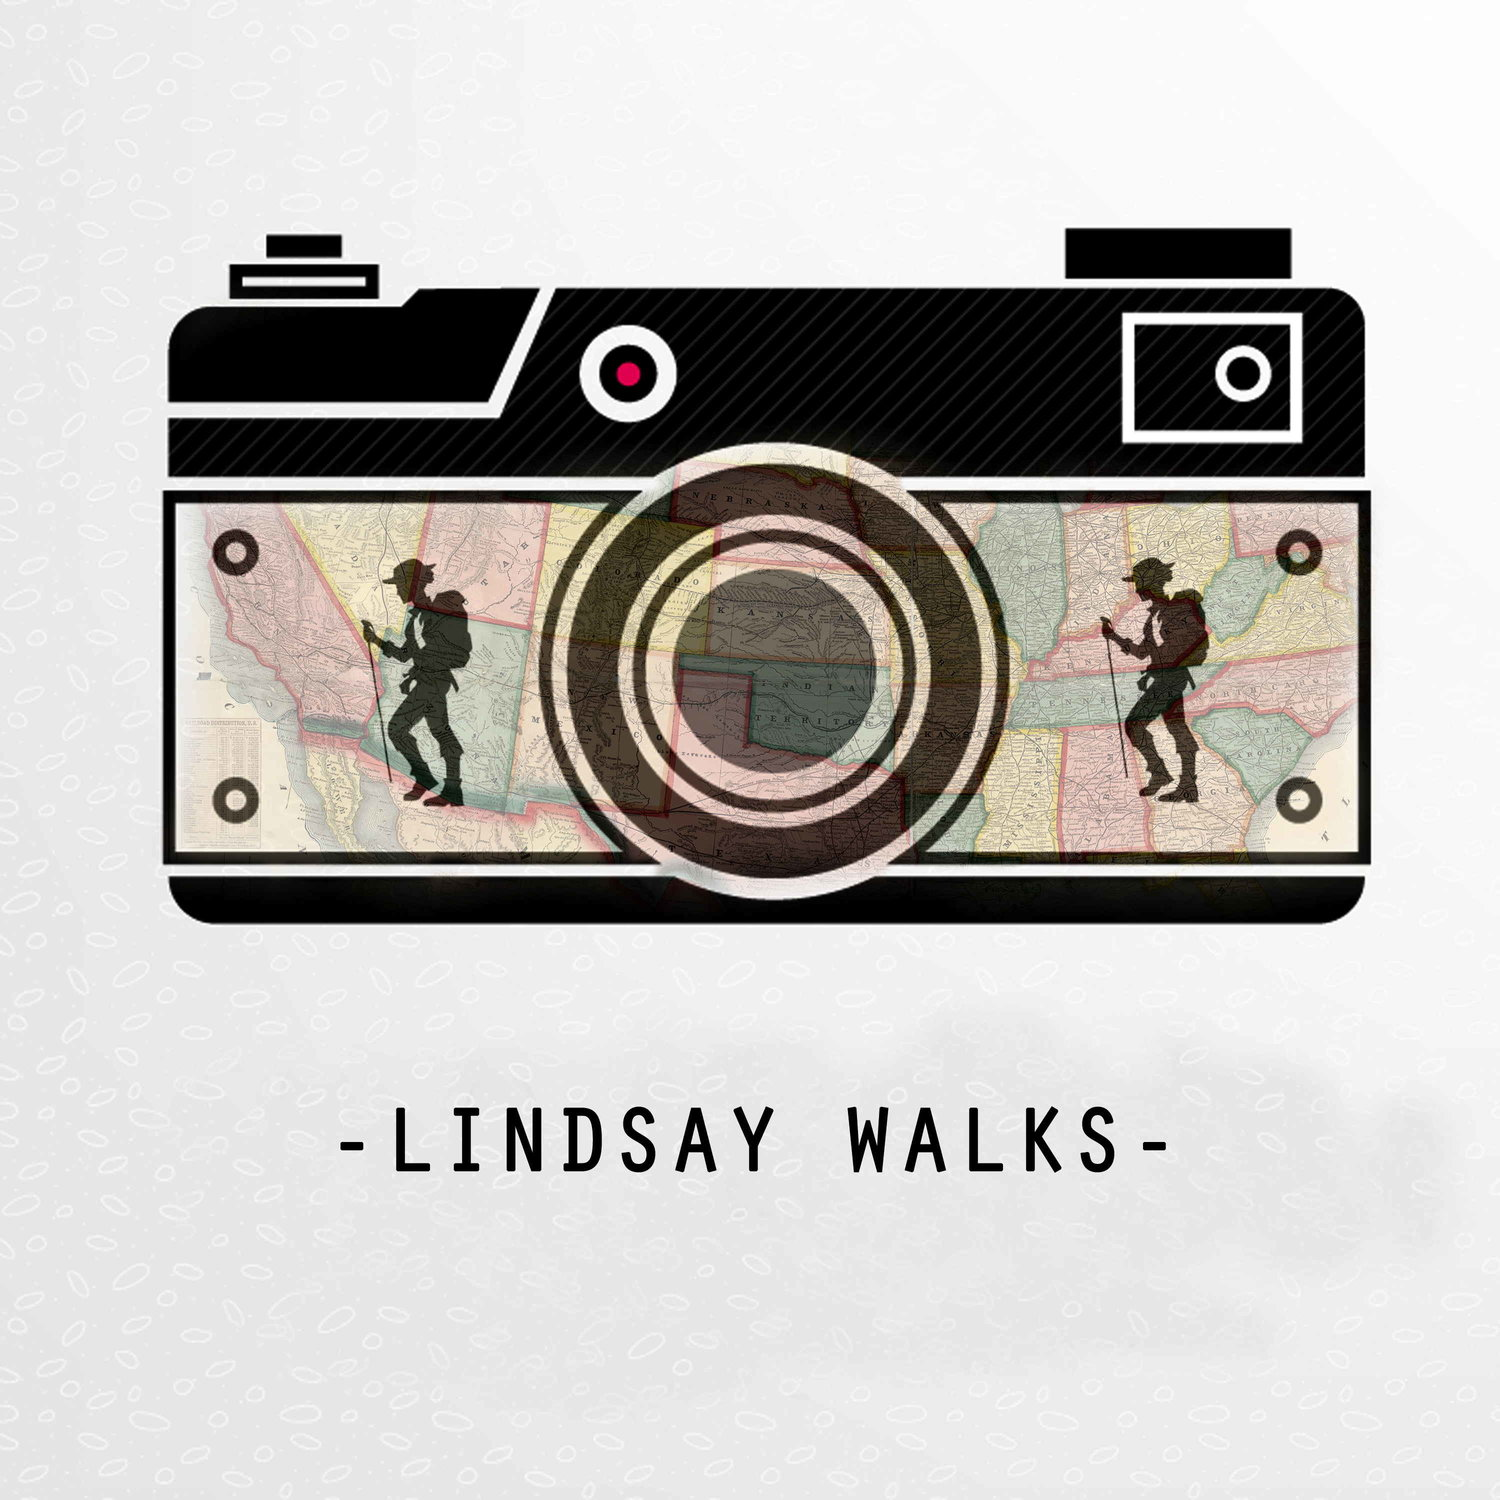 The Lindsay Walks Podcast - Lindsay Walks Across America